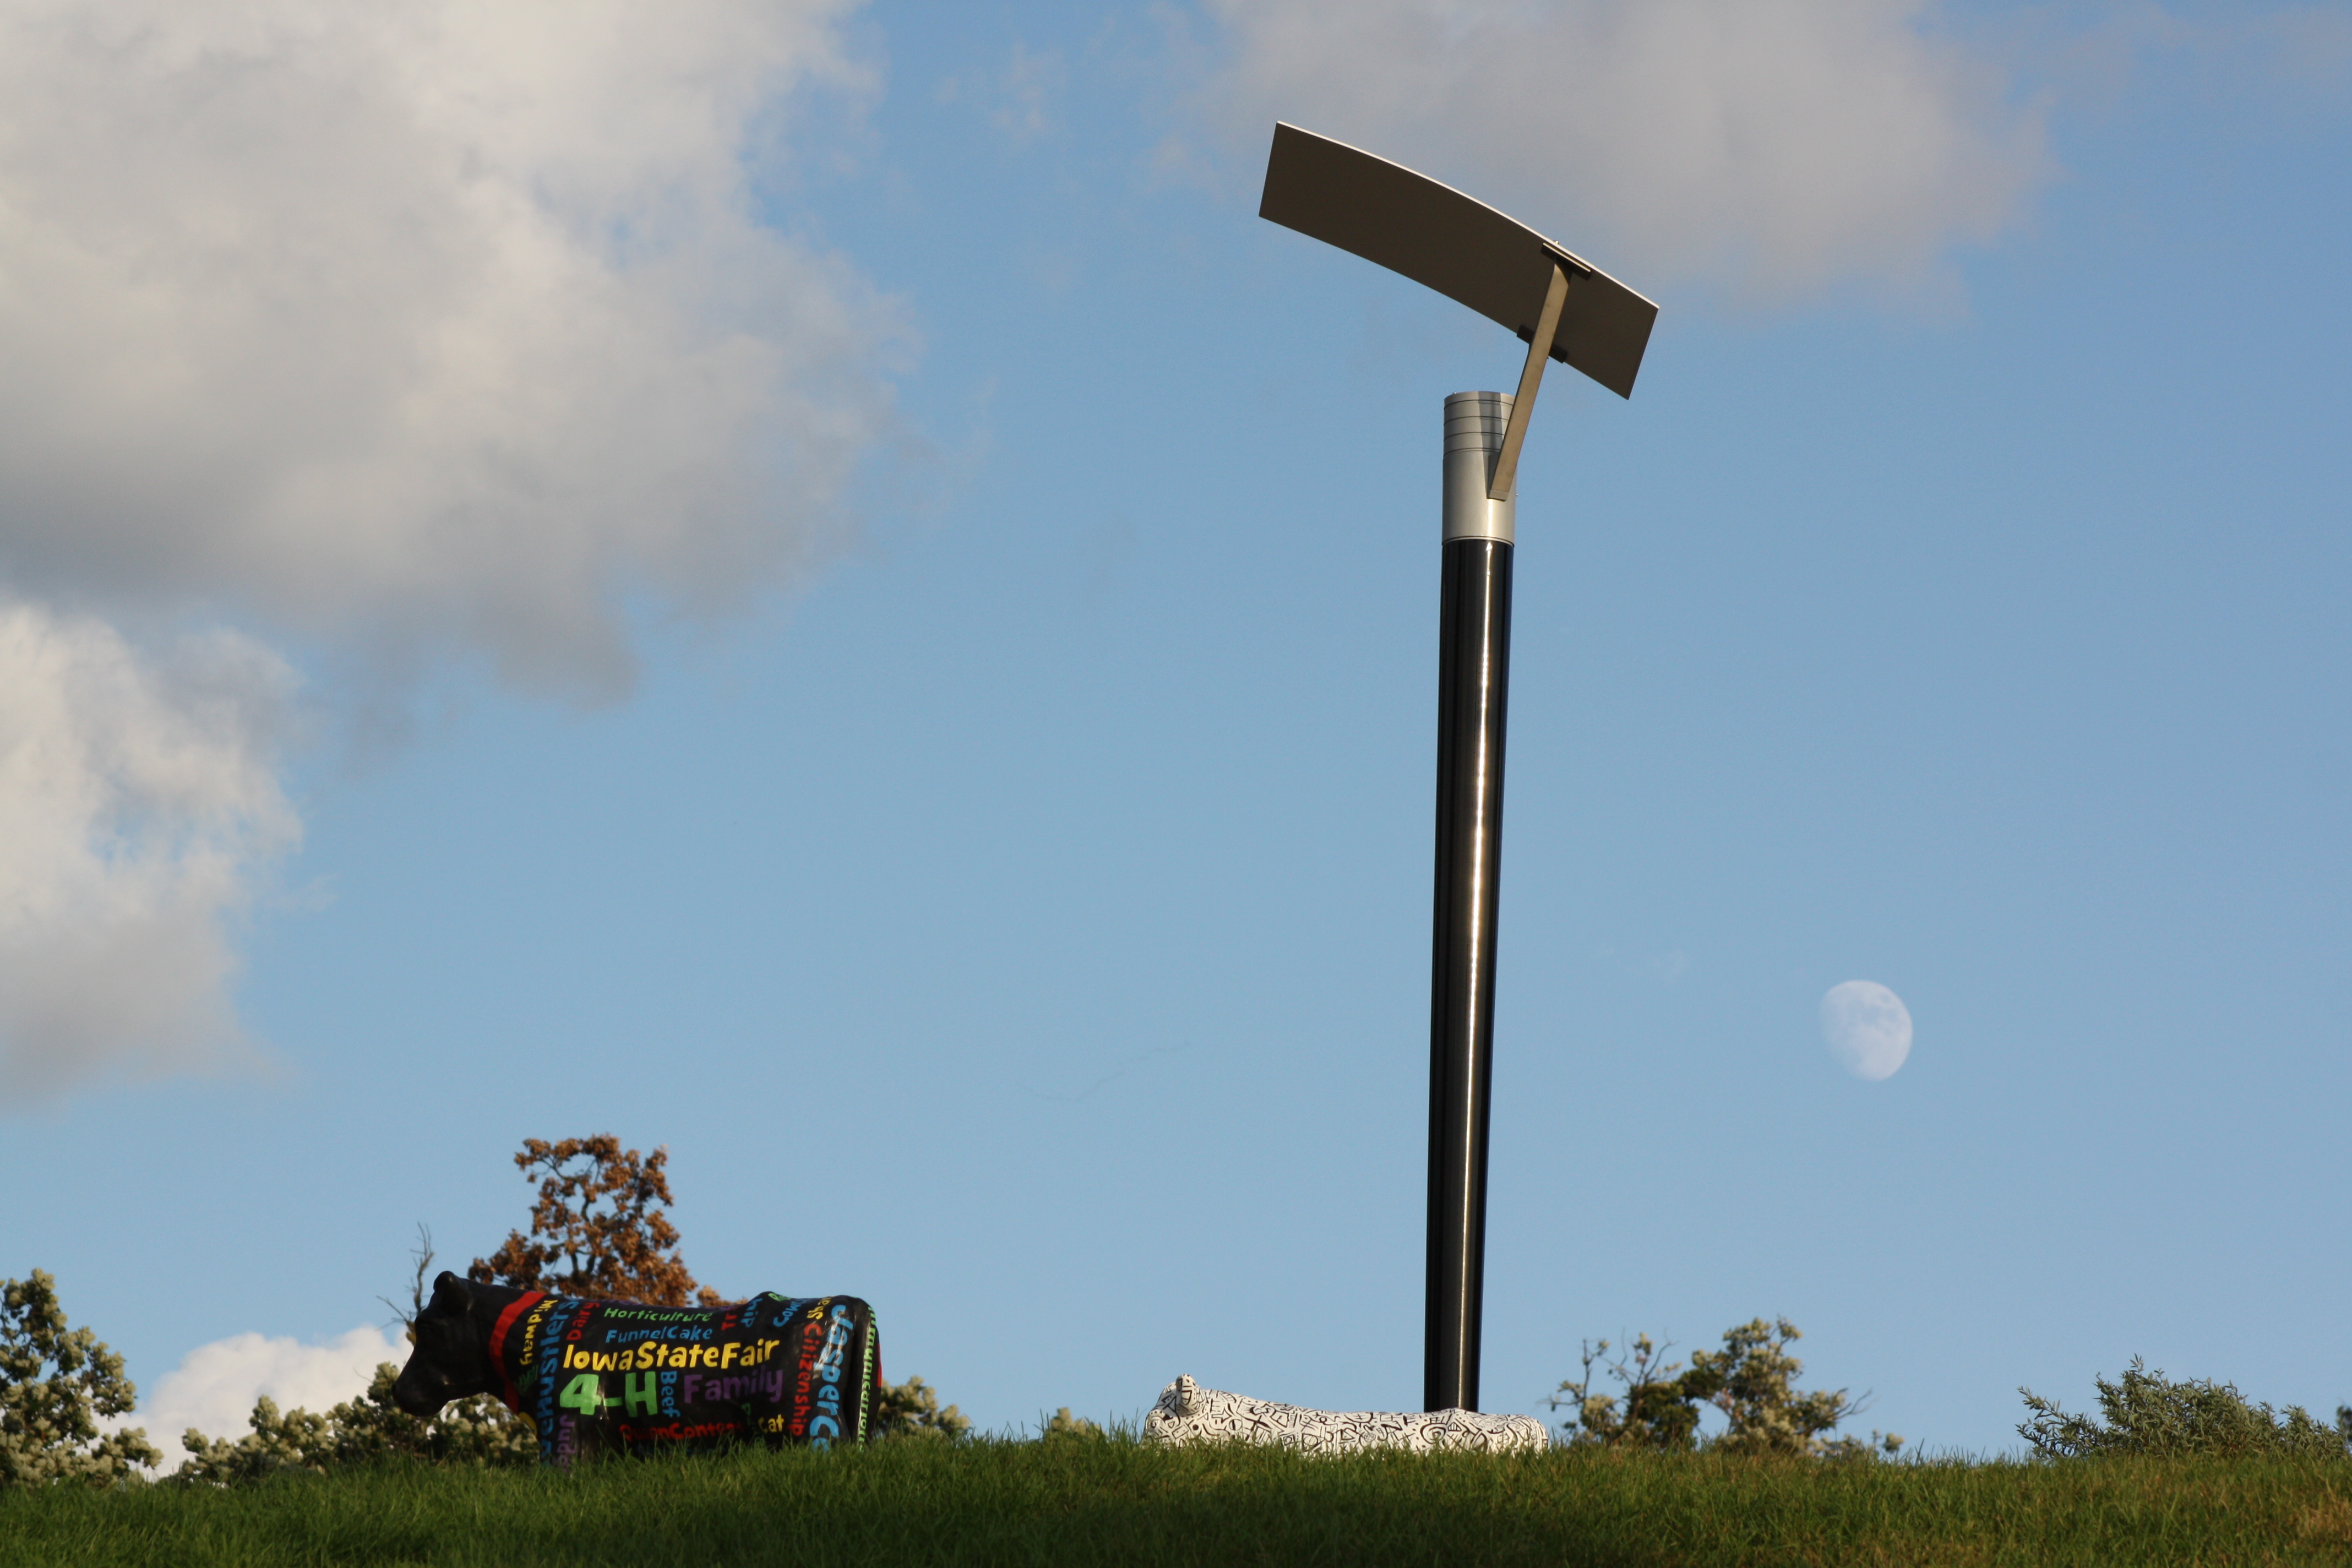 Solar energy panels at the Iowa State Fair;  Photo by vanhookc, Flickr.